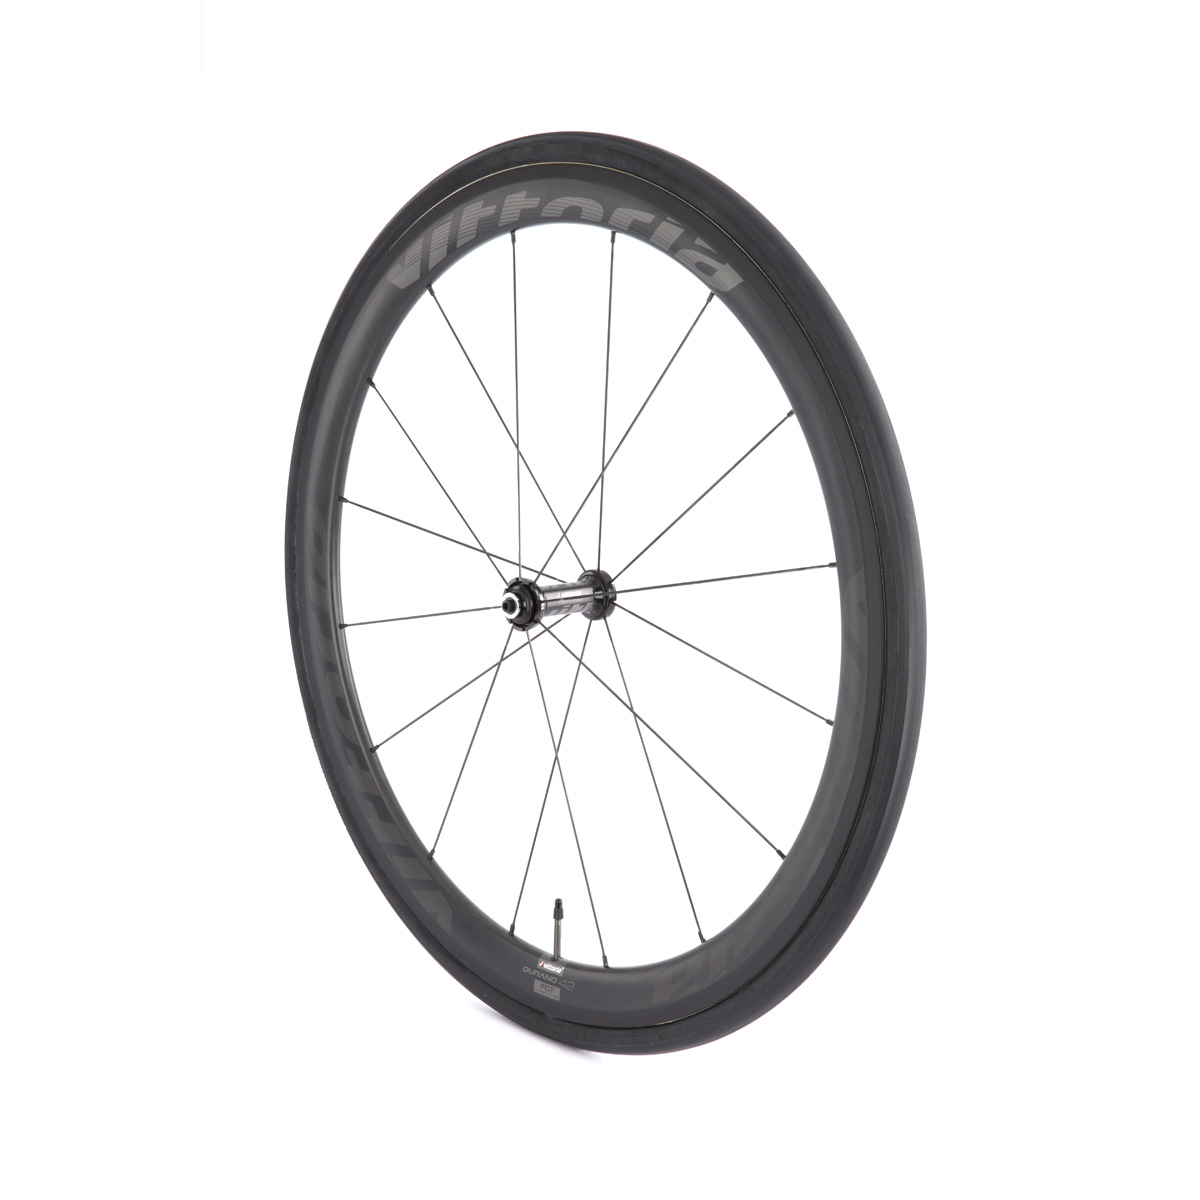 Vittoria Qurano 46 Carbon Tubular Road Bicycle Wheelset